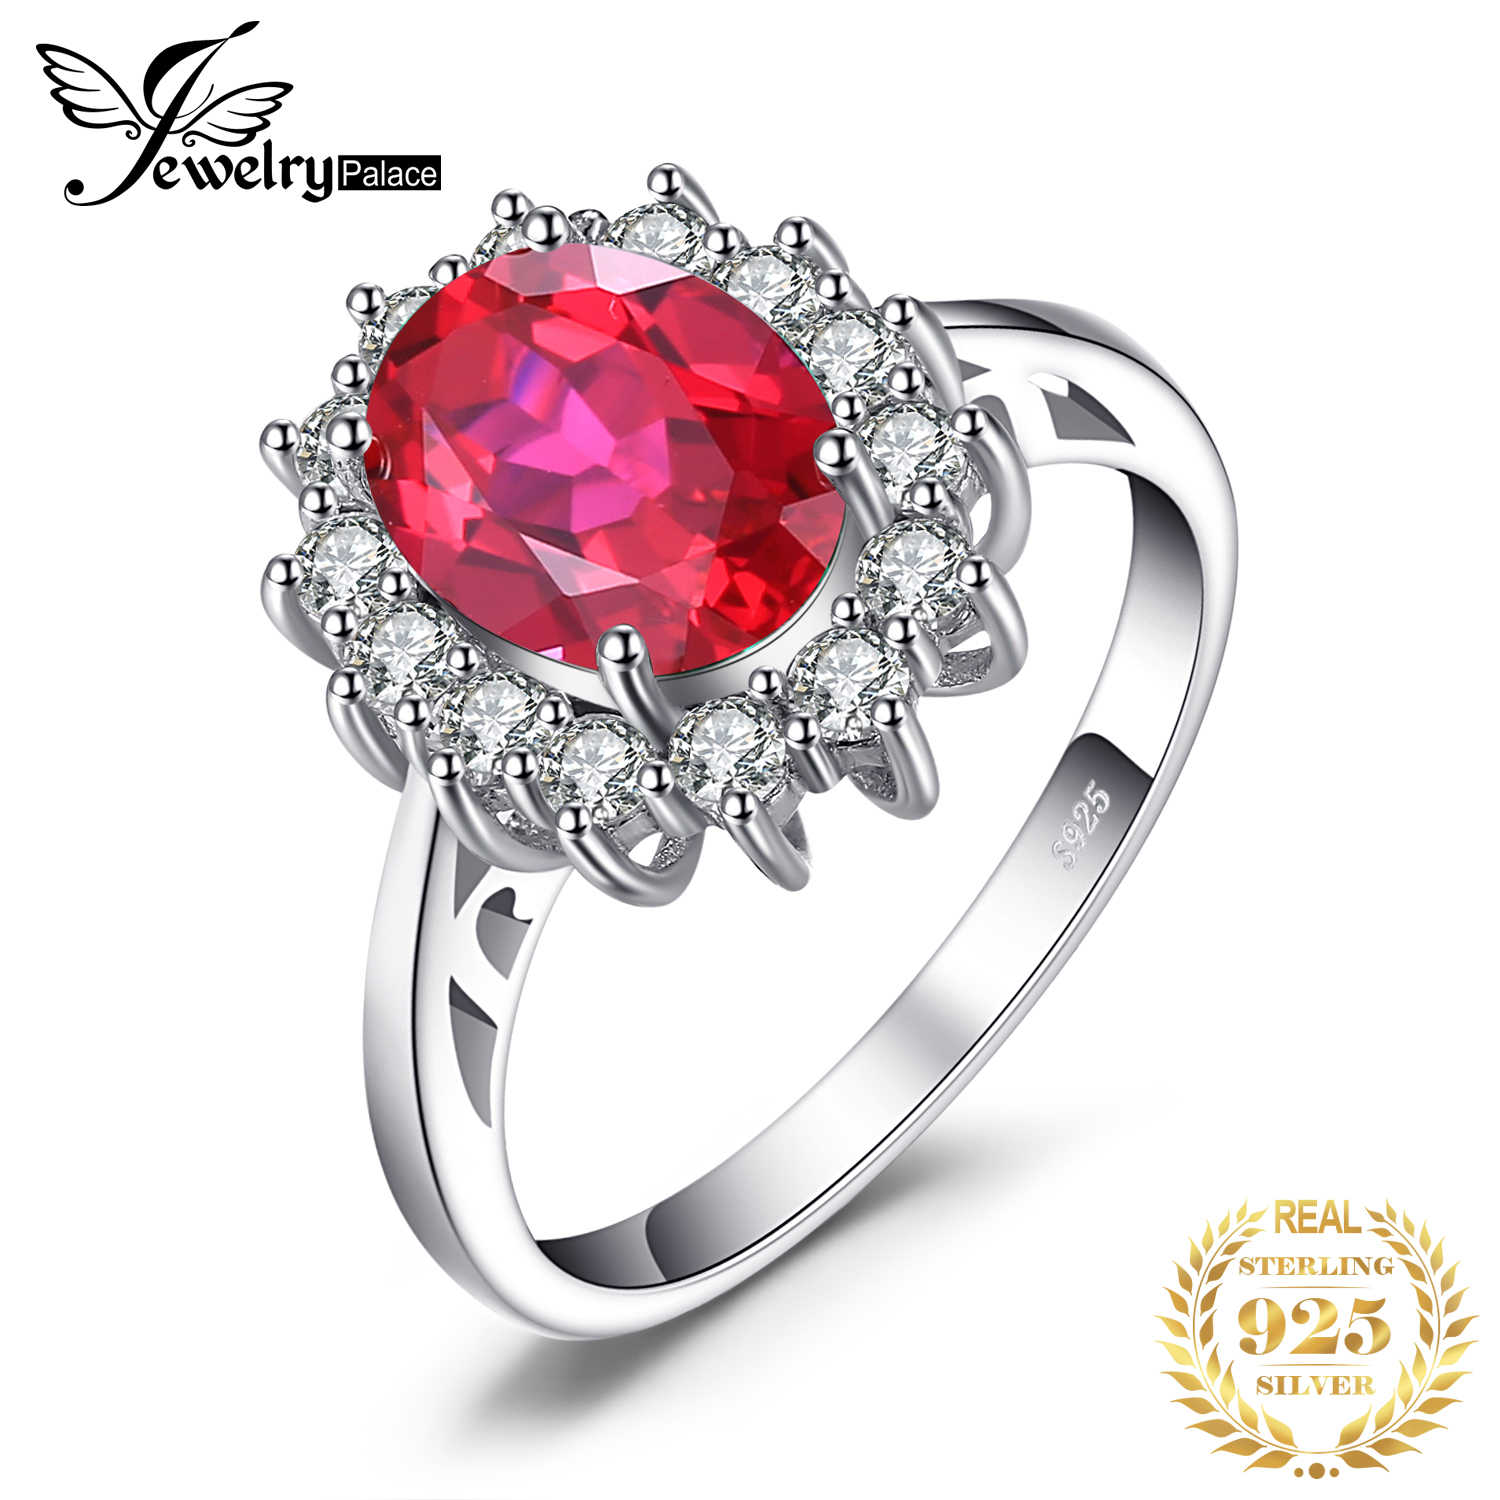 JewelryPalace Princess Diana William Engagement Wedding Created Red Ruby Ring Set Pure Solid Genuine 925 Sterling Silver Jewelry